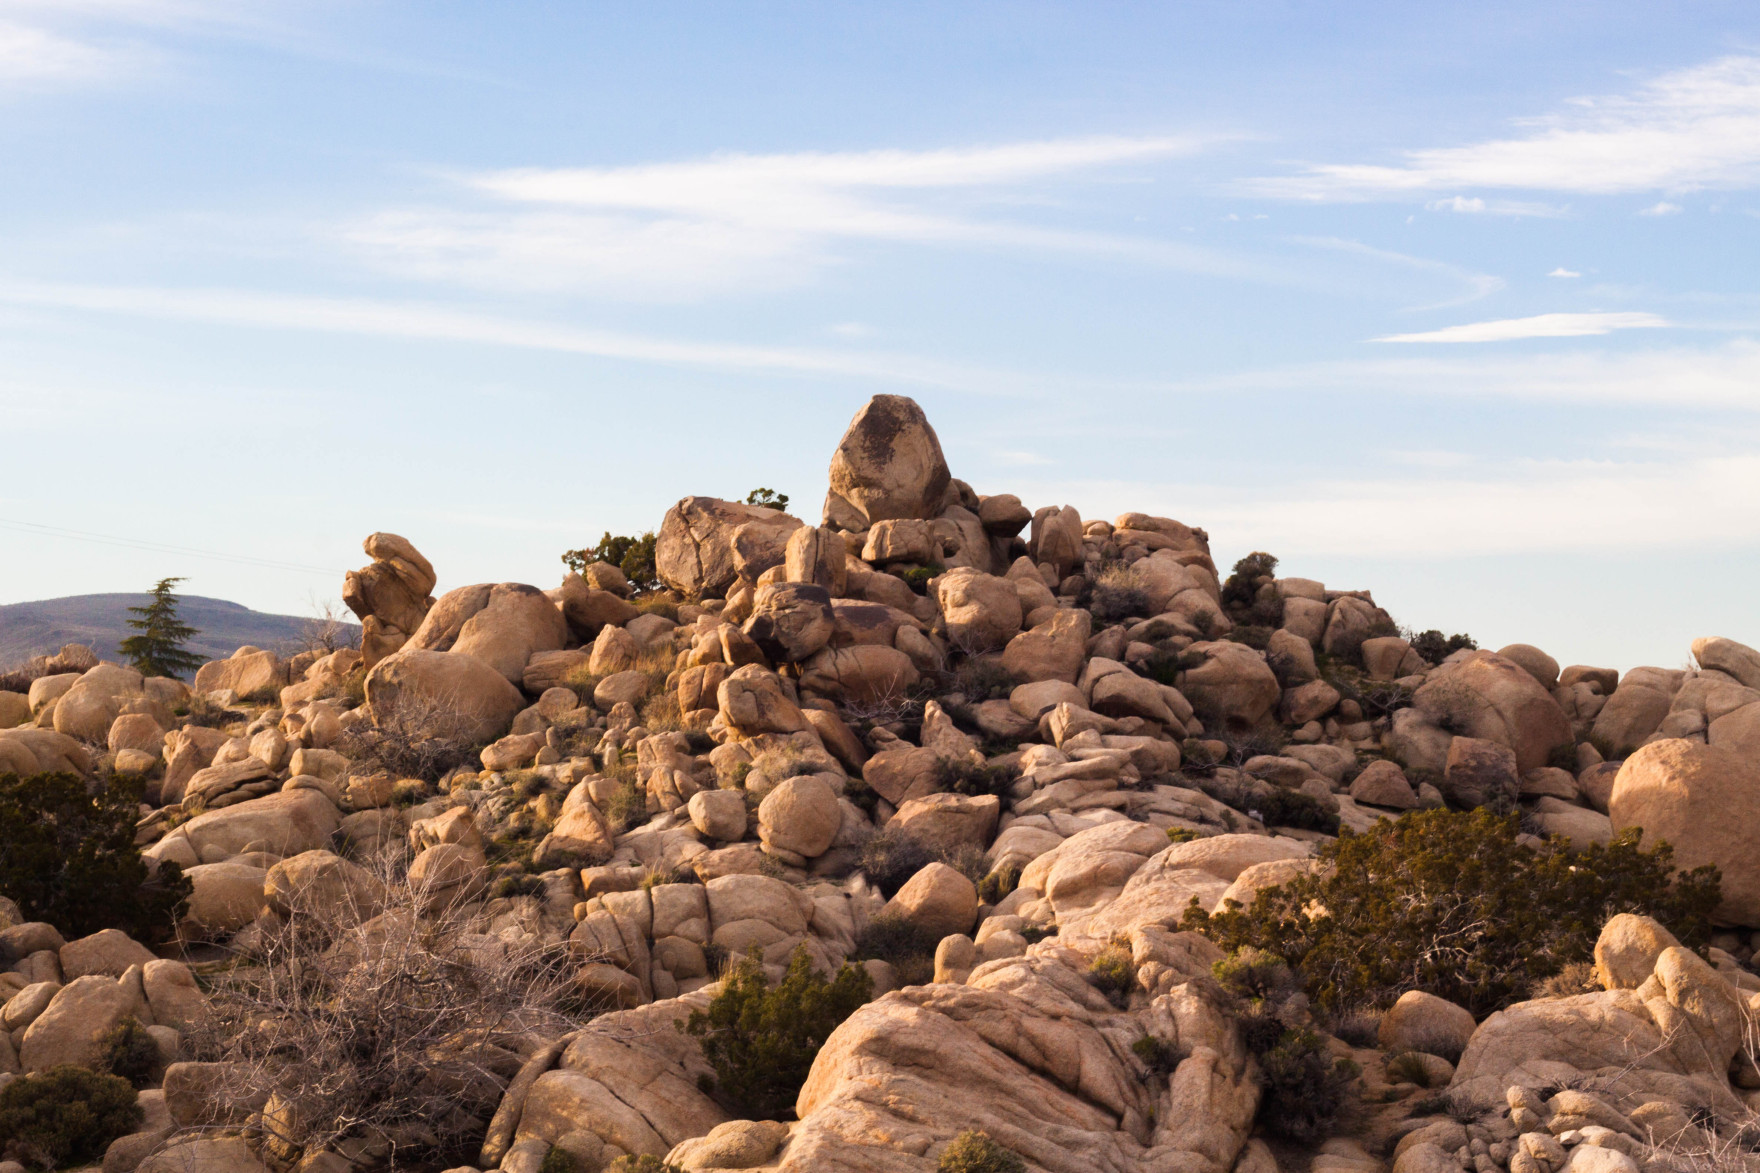 Bored Vegetarian Bethany Pickard Yucca Valley Joshua Tree Pile of Rocks-15